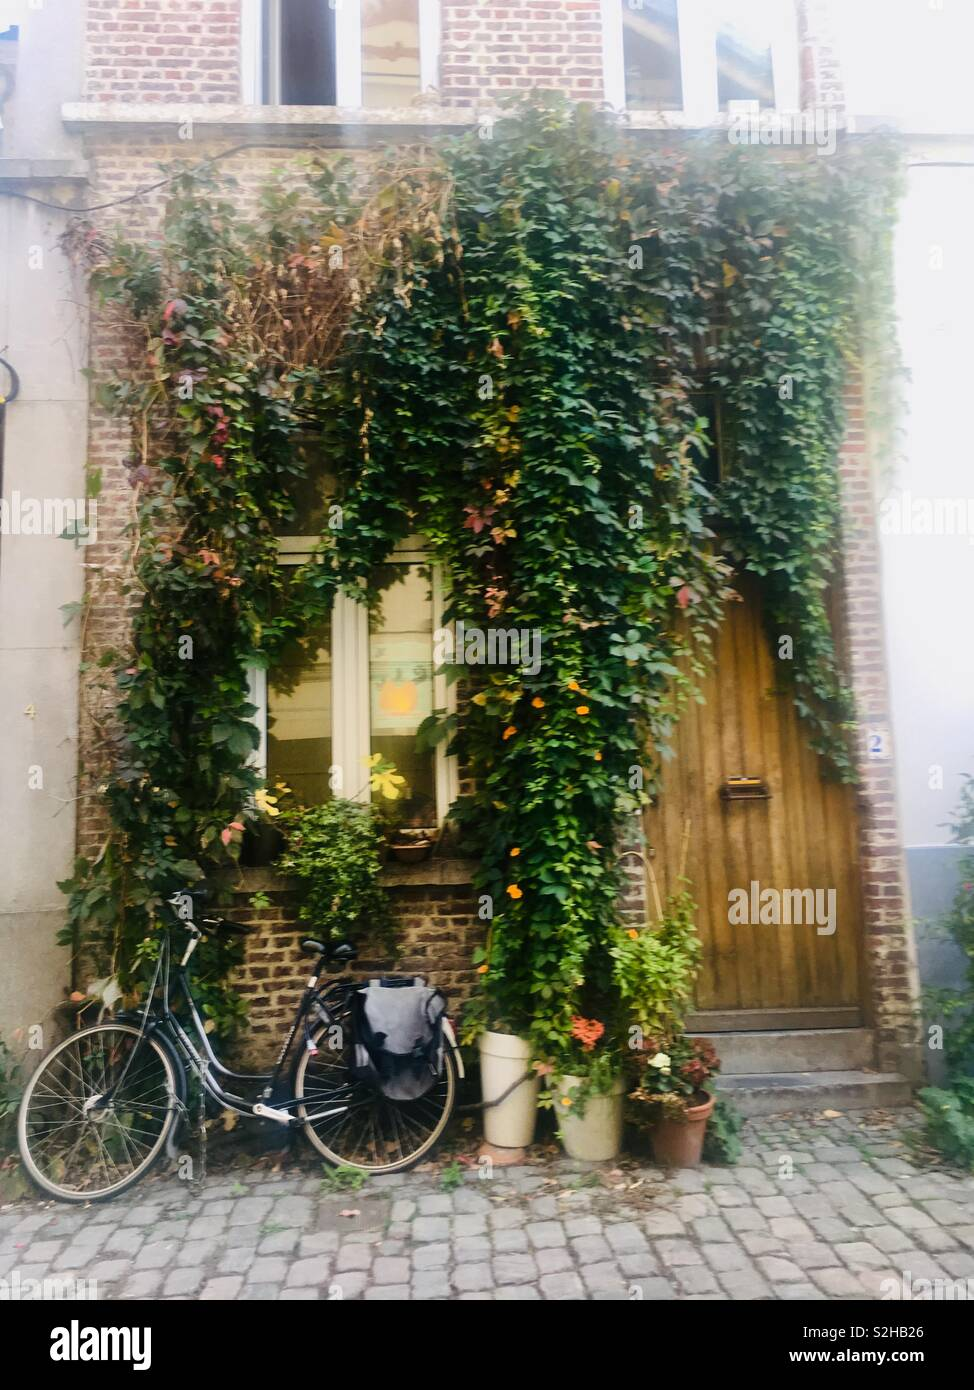 Romantic facade of house with bicycle - Stock Image